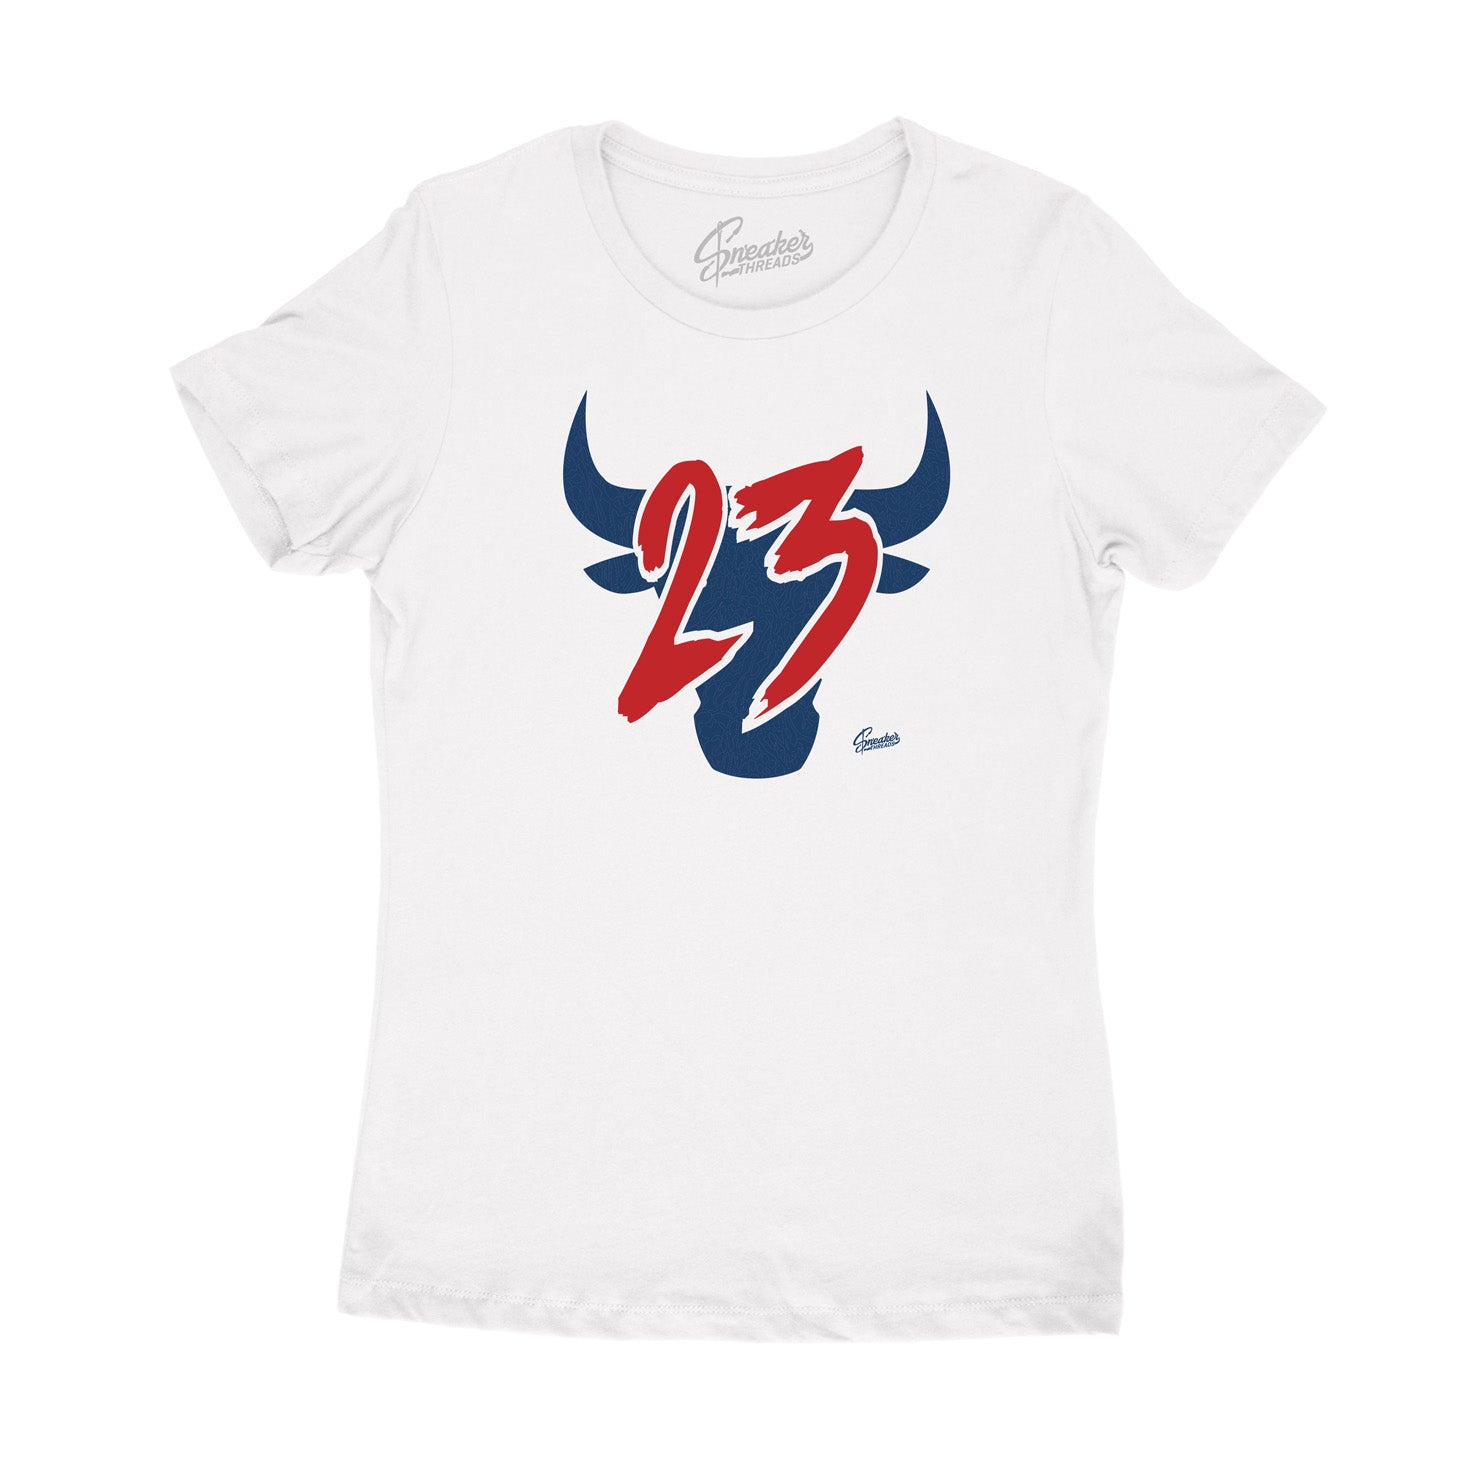 Womens shirt collection created and designed to match the Jordan 4 fiba womens sneakers